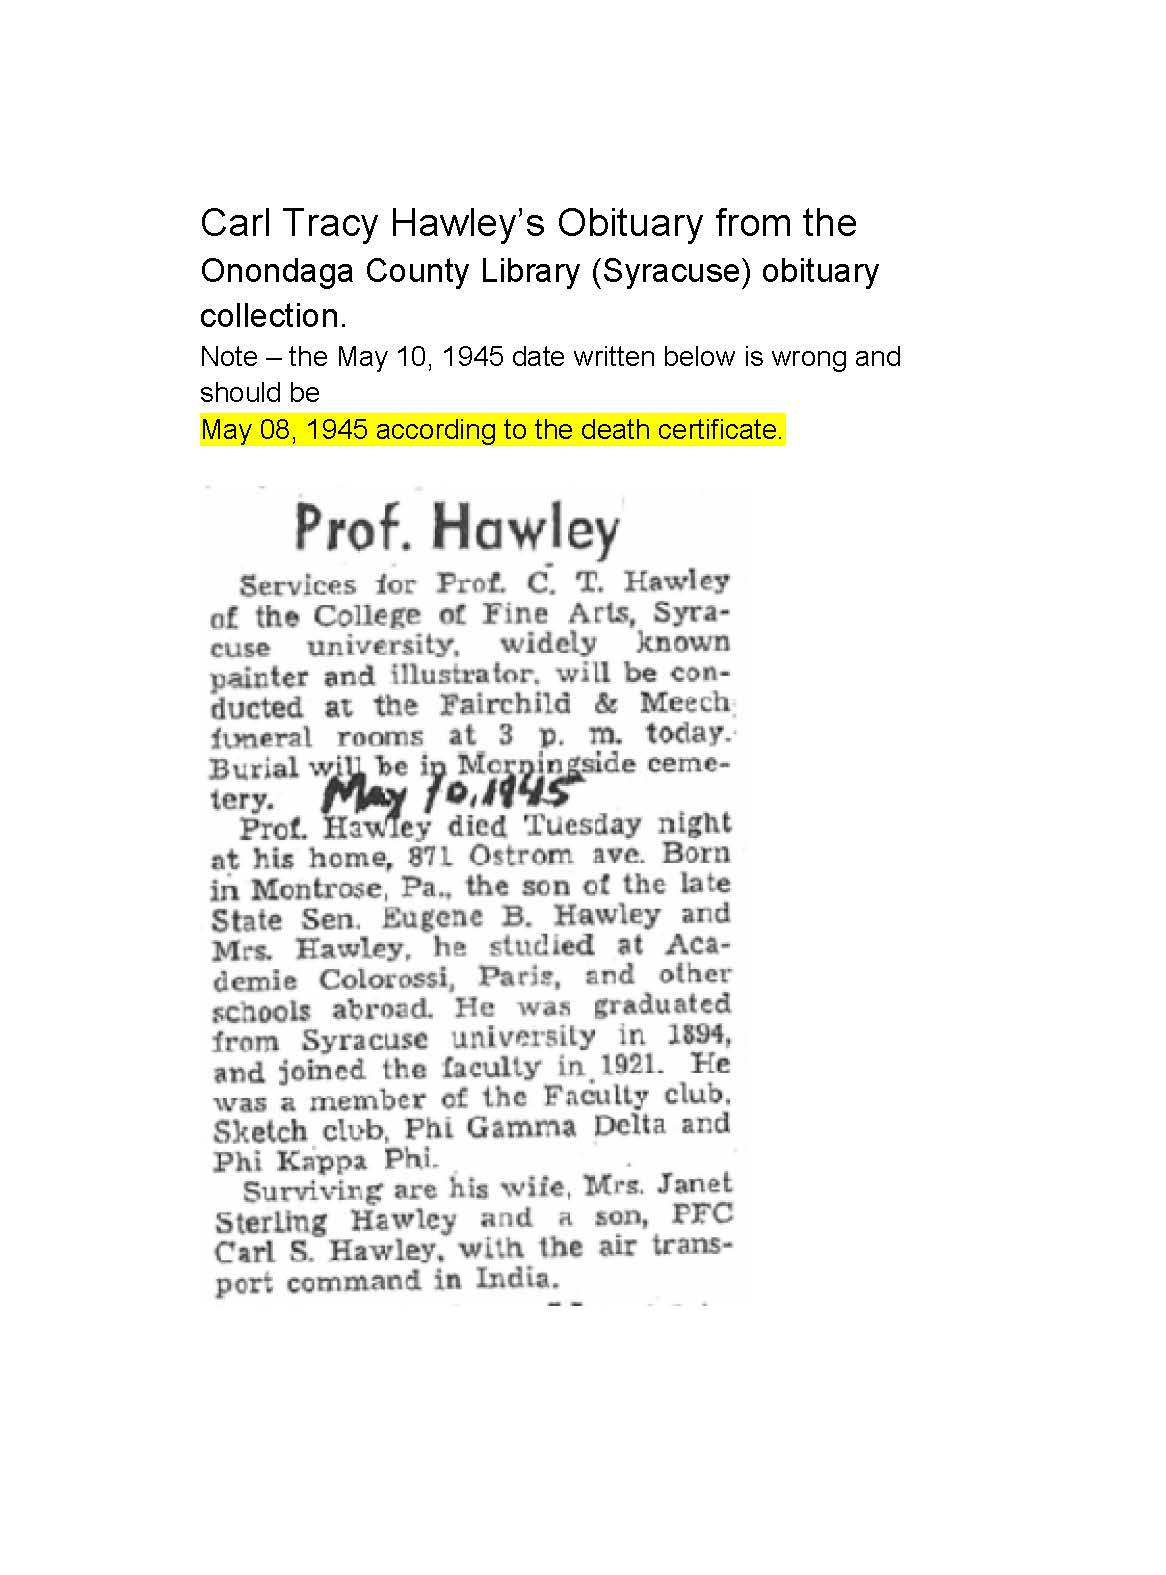 Carl tracy hawley 1873 1945 find a grave memorial carl tracy hawleys obituary from the onondaga county library syracuse obituary collection aiddatafo Gallery